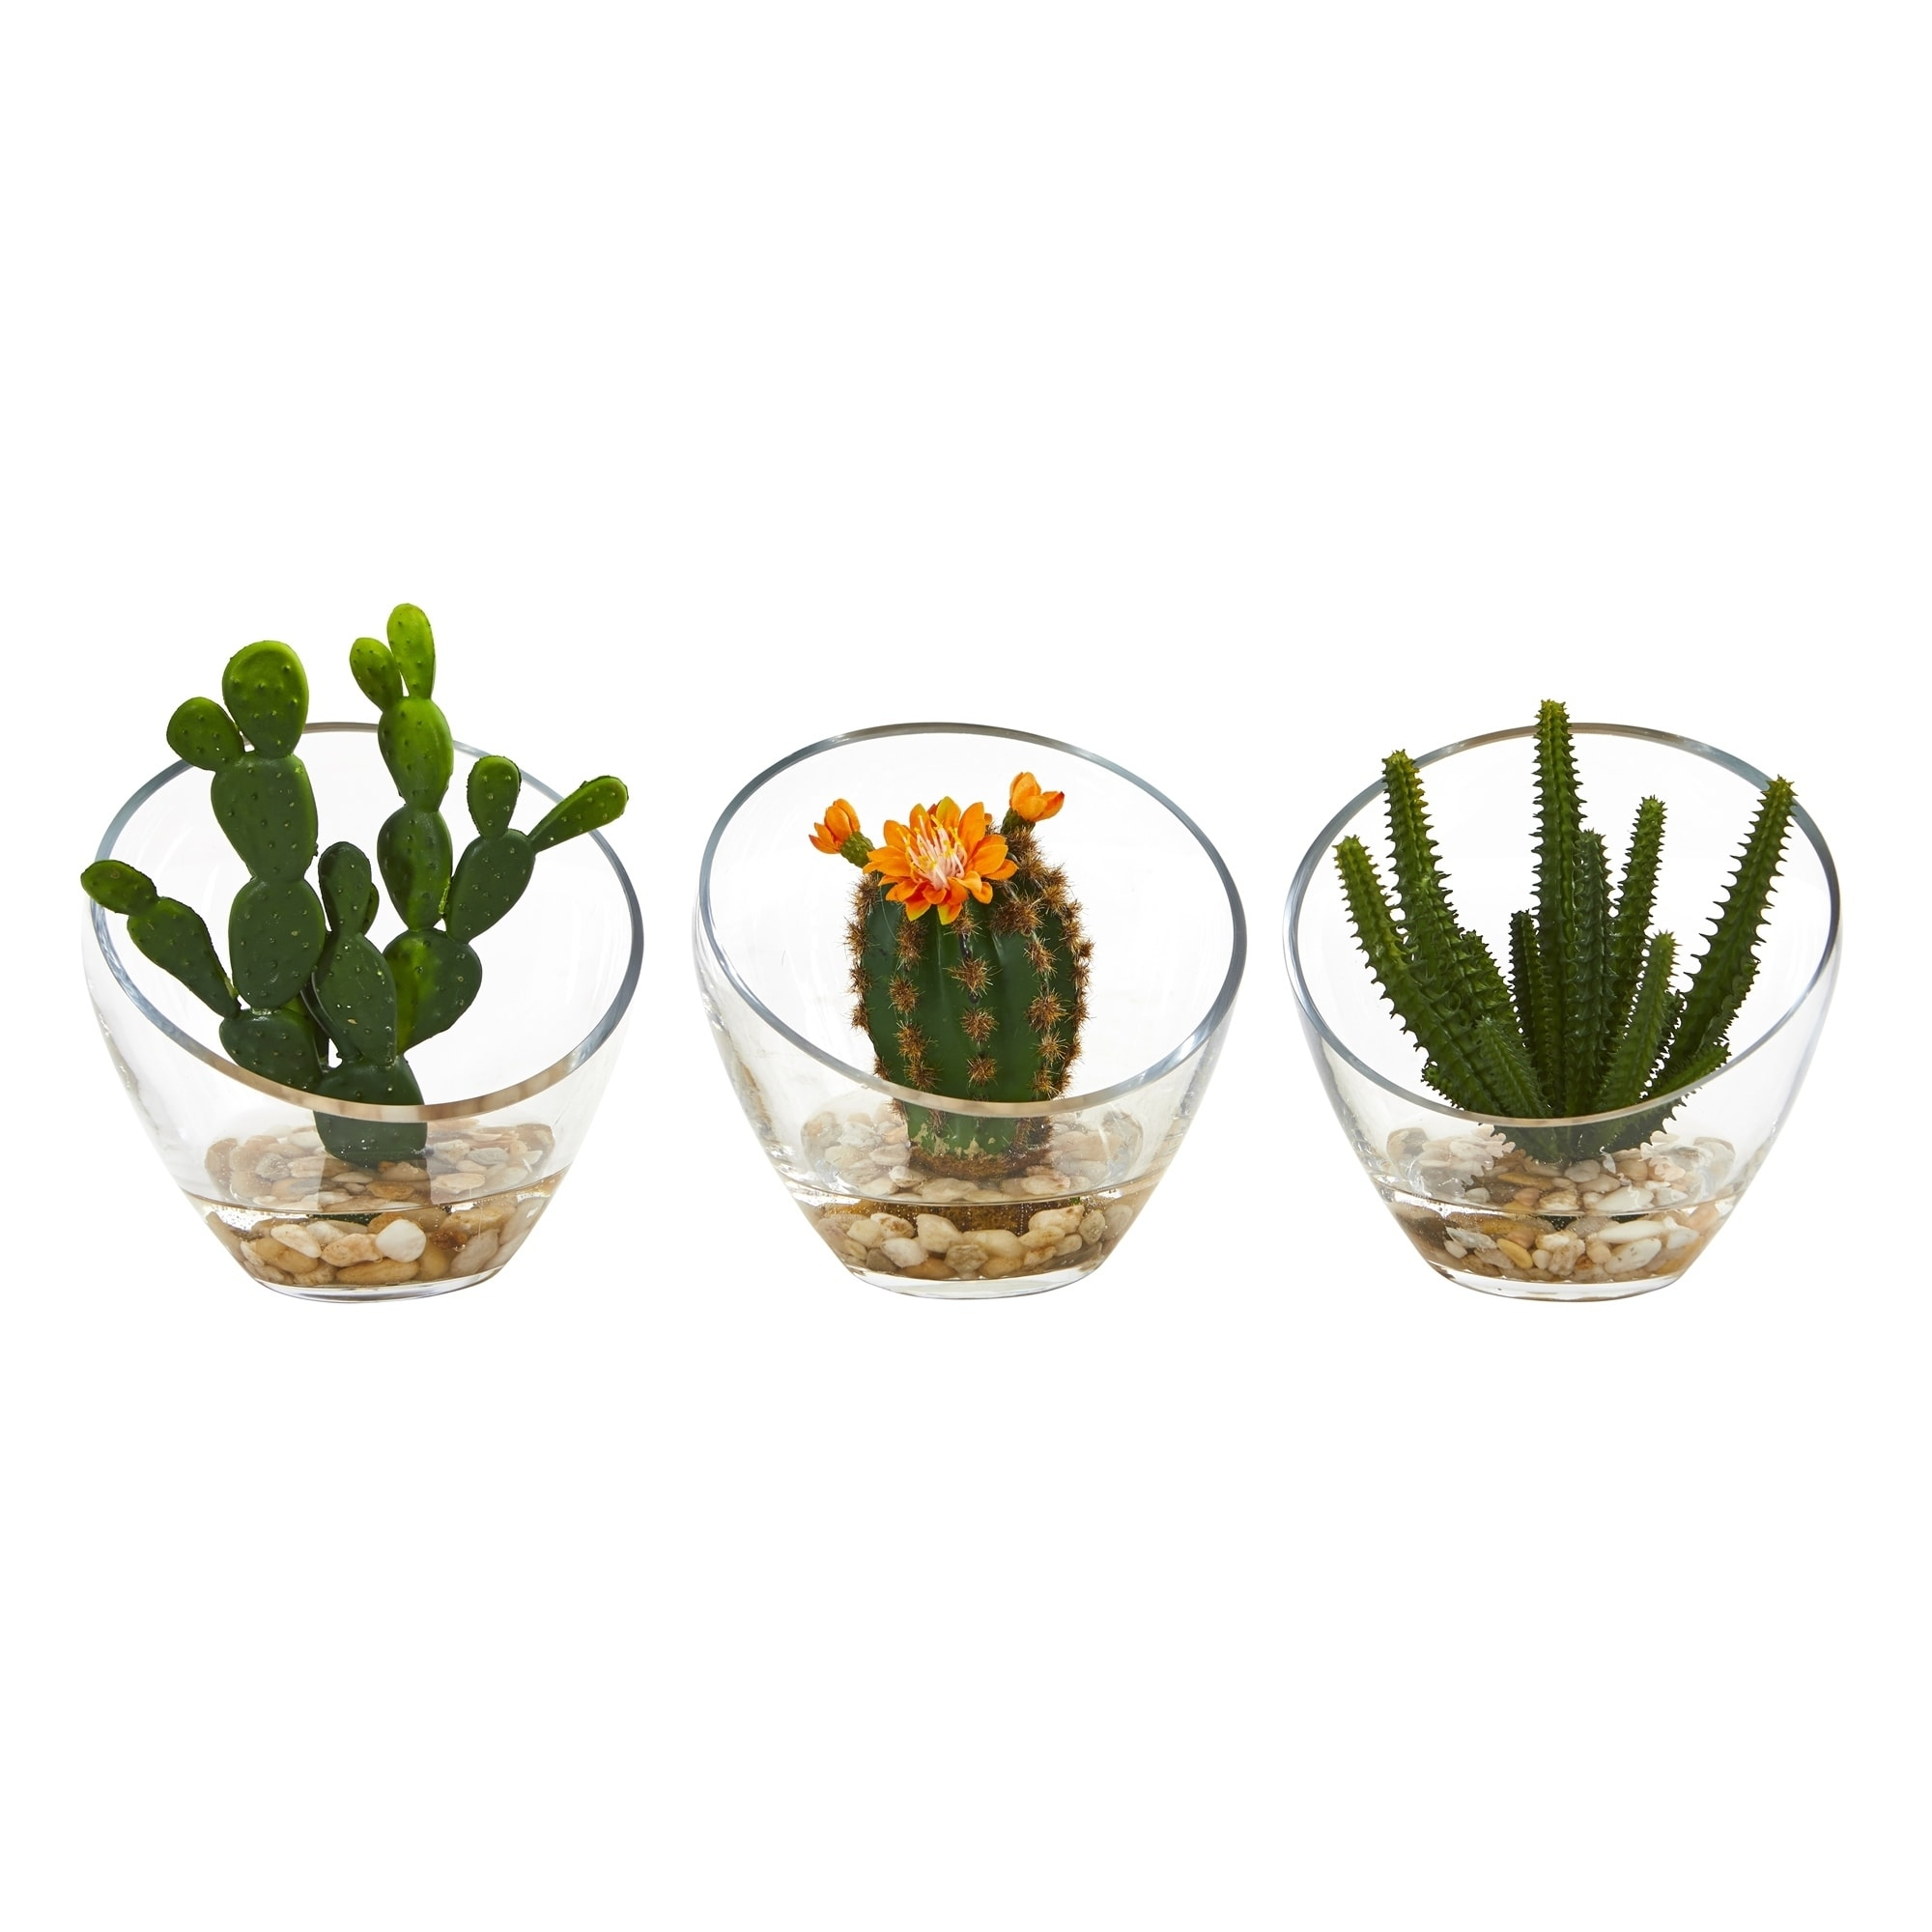 7 Mixed Succulent Artificial Plant in Glass Vase (Set of 3)